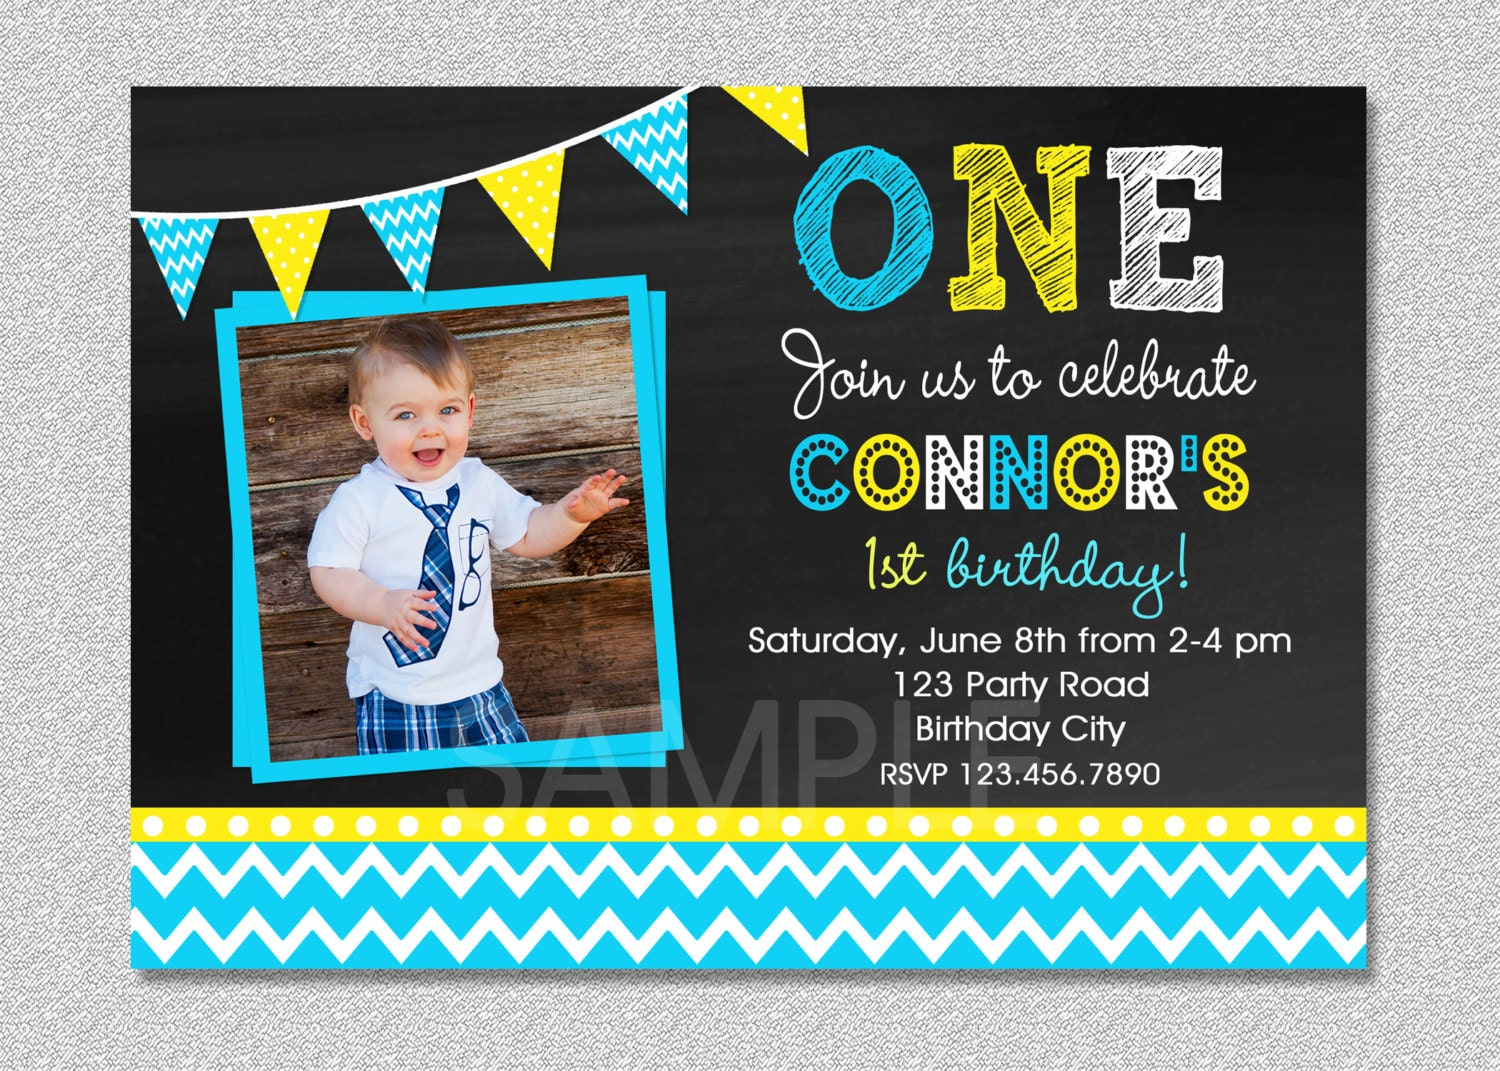 birthday invitations boys Minimfagencyco